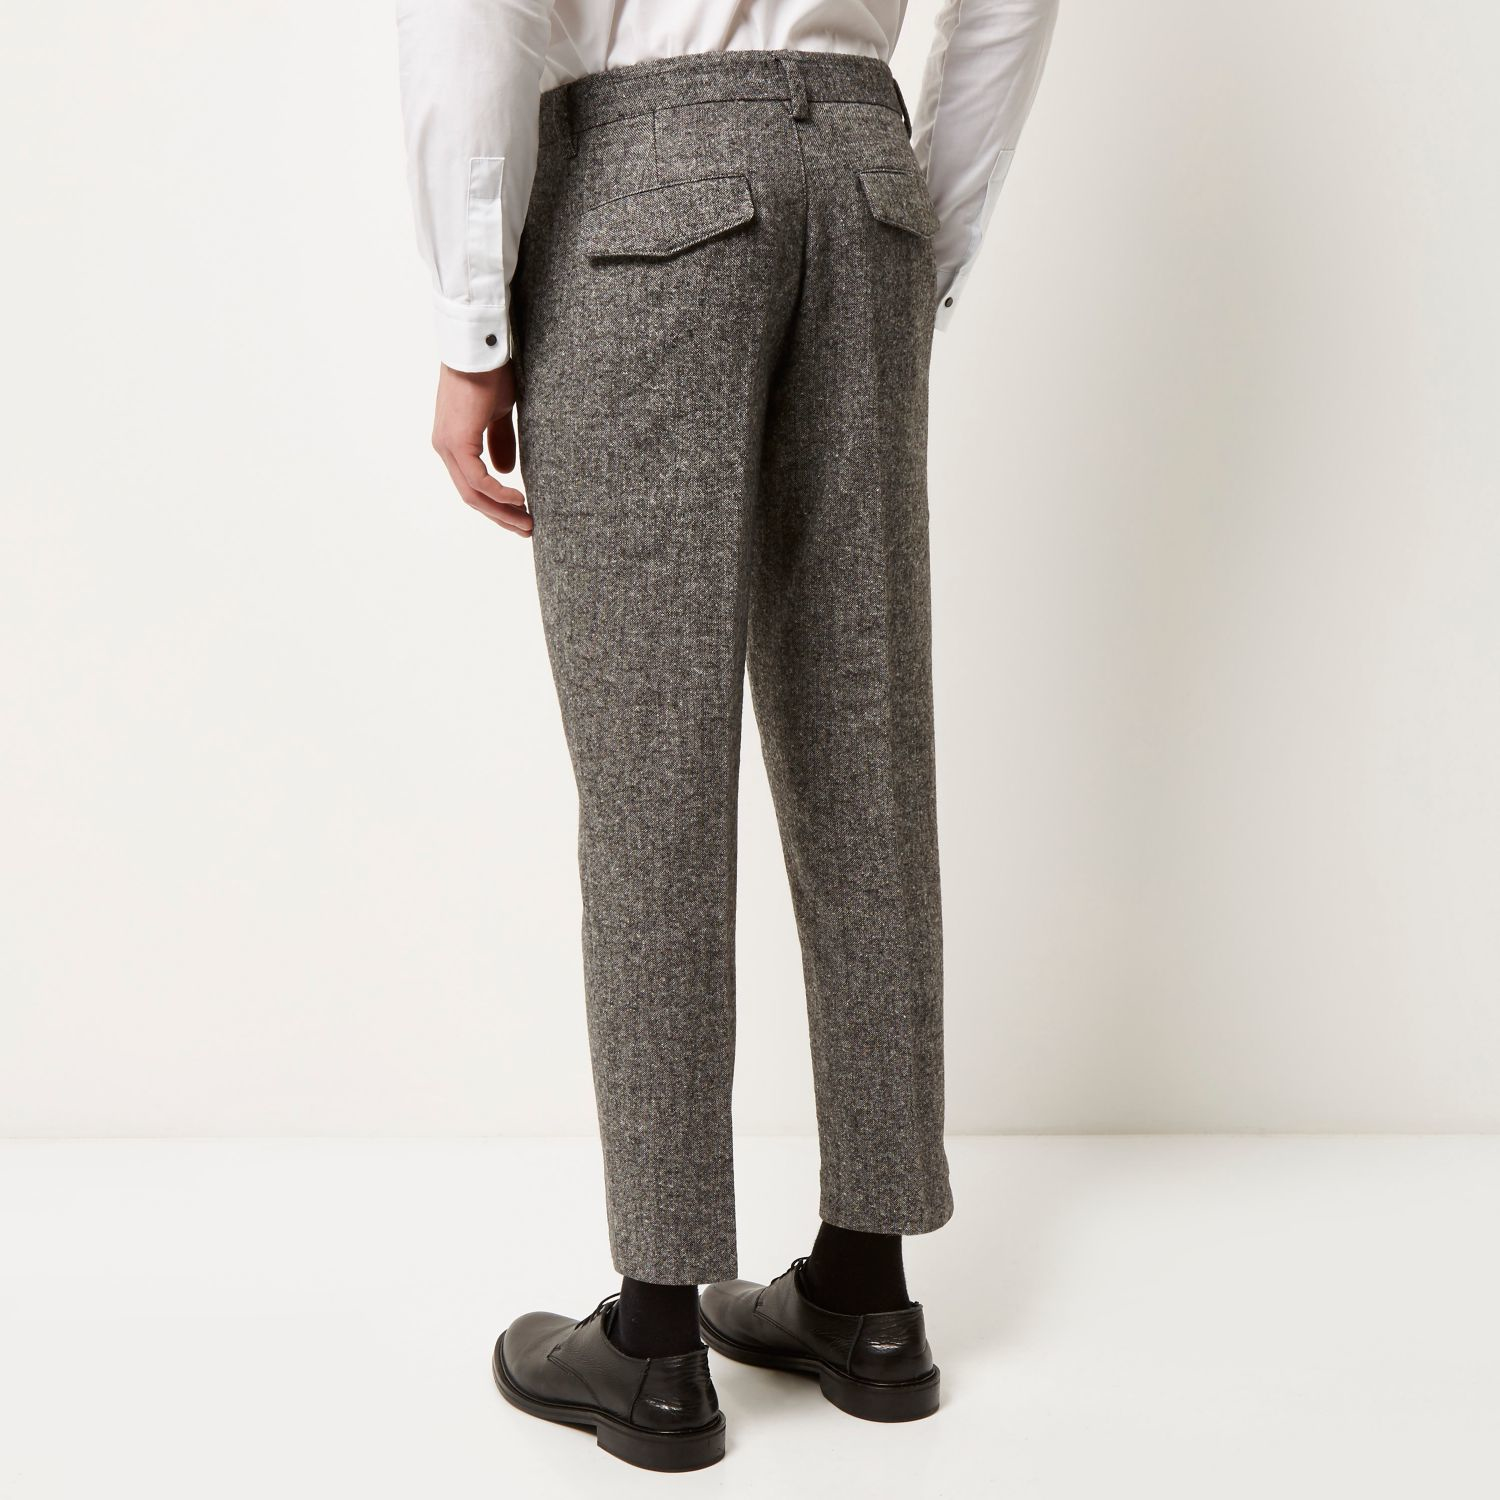 Mens Tweed Suits, your one stop shop for all your tweed suits, trousers, waistcoats and accessories. MENS TWEED SUITS. #NEED FOR TWEED. SHOP NOW. FINISH THE LOOK. Finish the look with our accessory line. SHOP NOW. Tweed Suits. SHOP NOW. Tweed Waistcoats. SHOP NOW. Tweed Trousers.